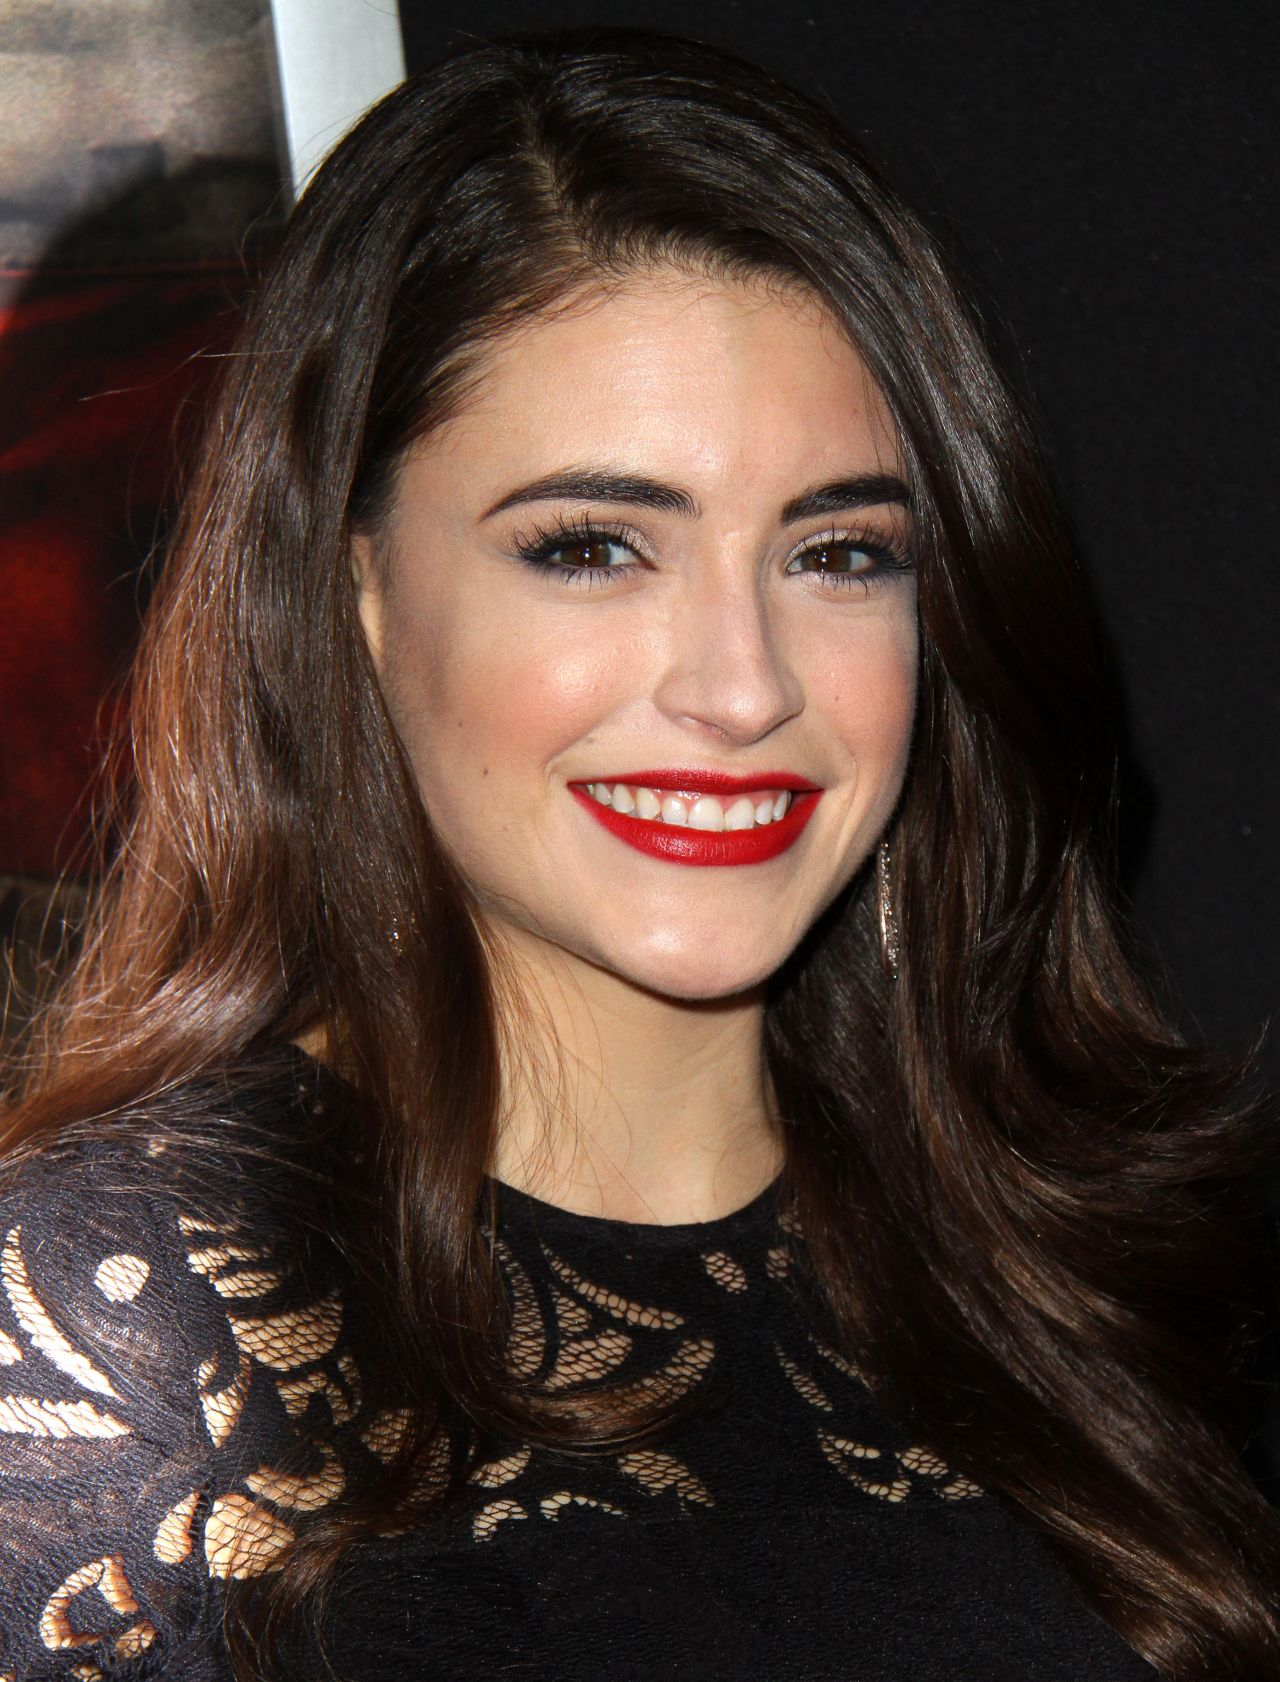 Daniela Bobadilla Five Things You Didn T Know About The Star Heavyng Com She is best known for playing sam goodson in the fx series anger management. daniela bobadilla five things you didn